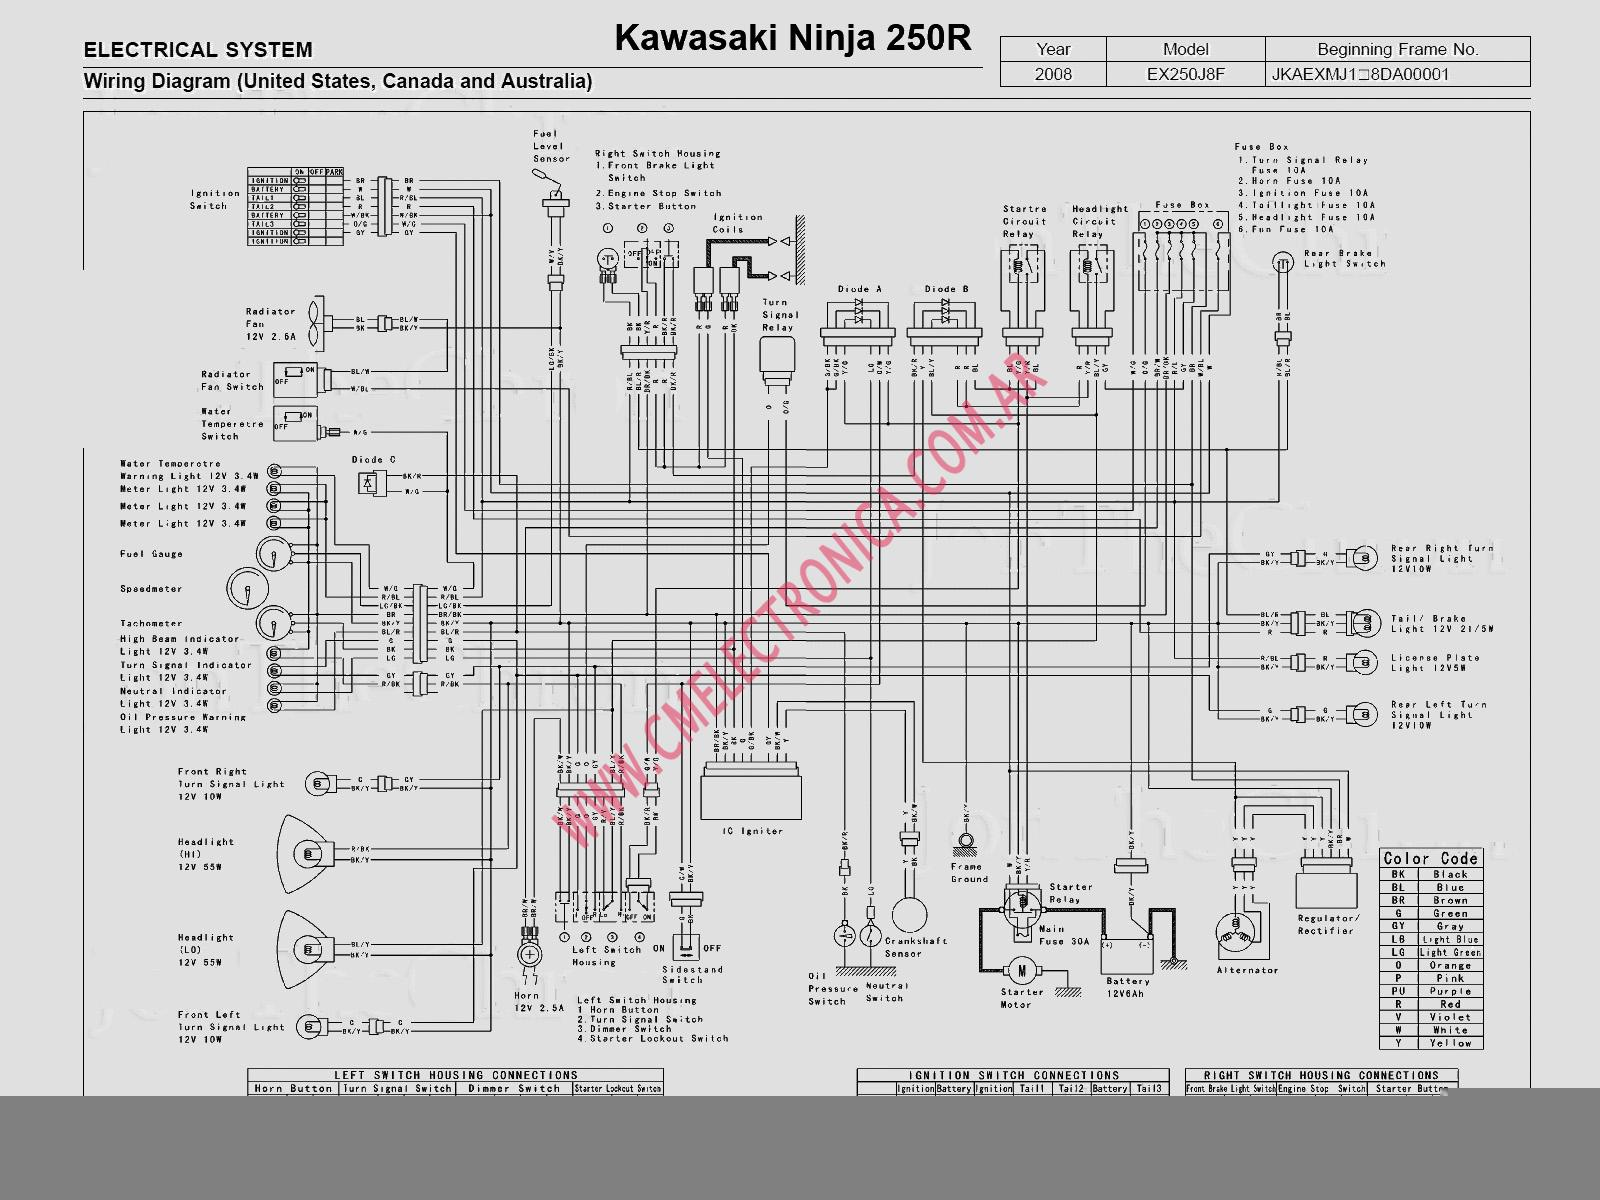 2010 Kawasaki Wiring Diagrams Great Installation Of Diagram Z1000 Ninja 250 Simple Schema Rh 1 Lodge Finder De 250r